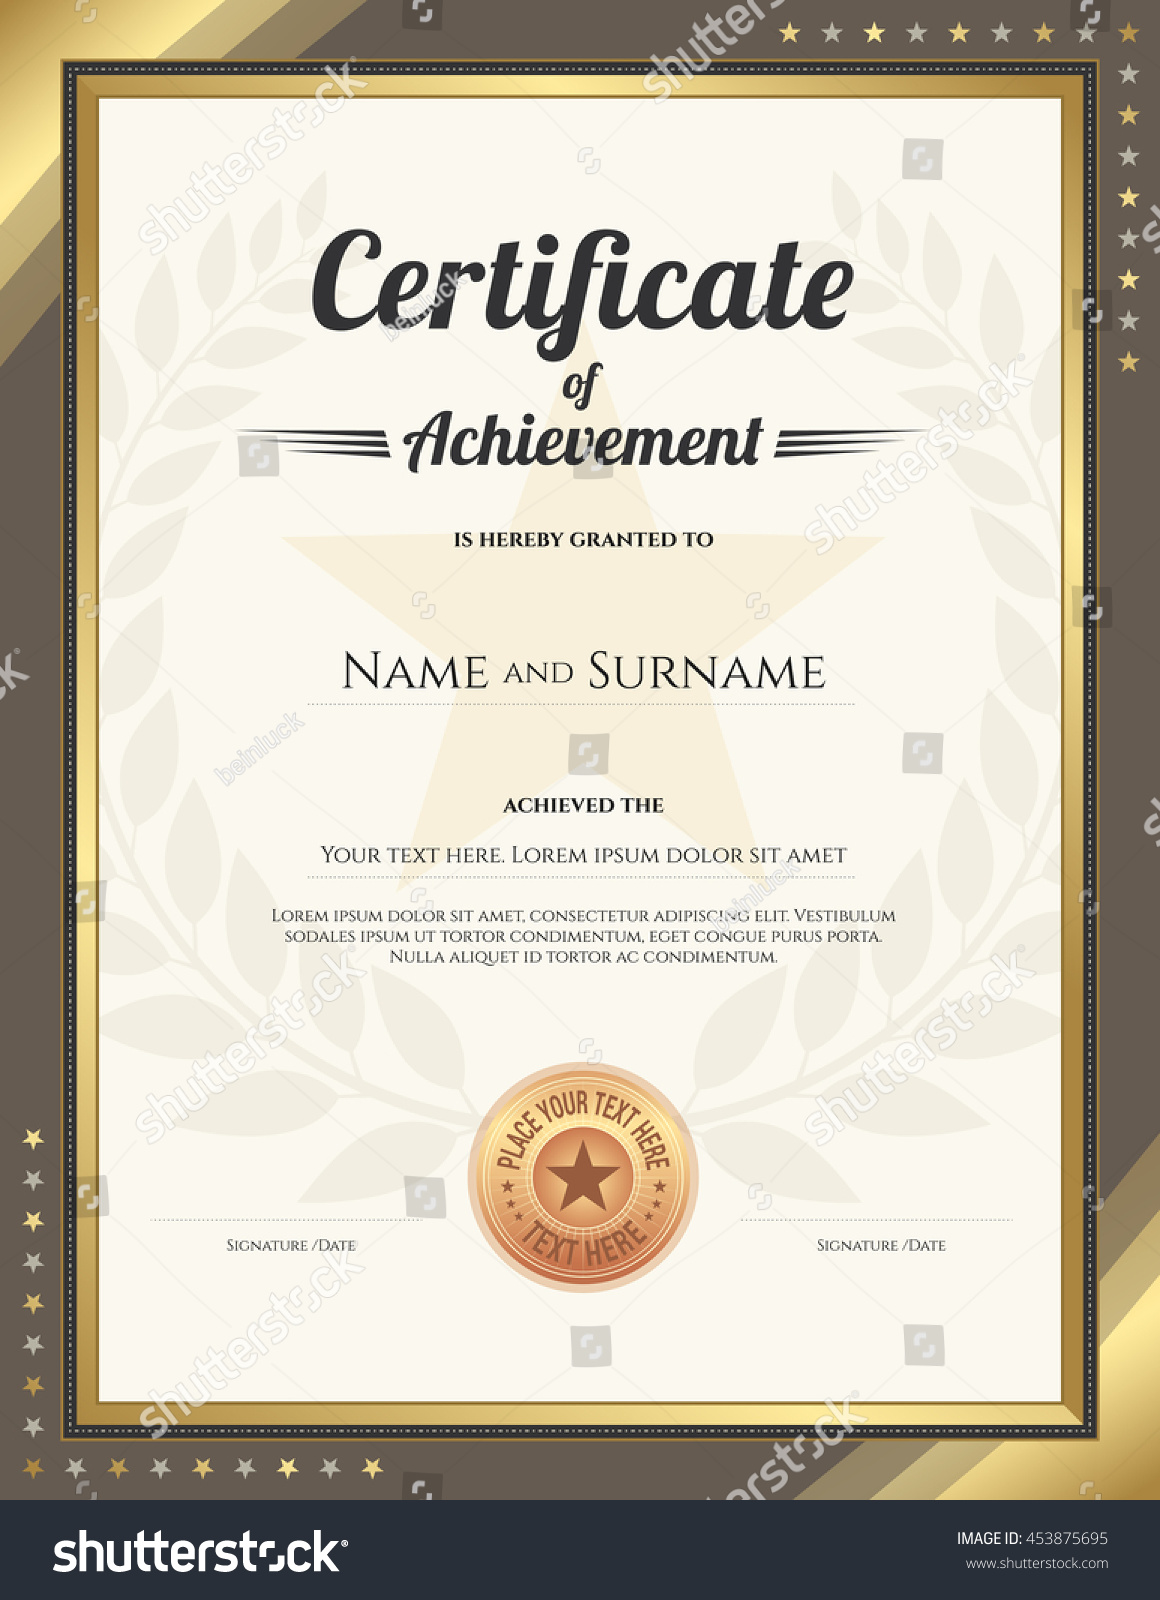 Portrait Certificate Achievement Template Gold Border Stock Vector